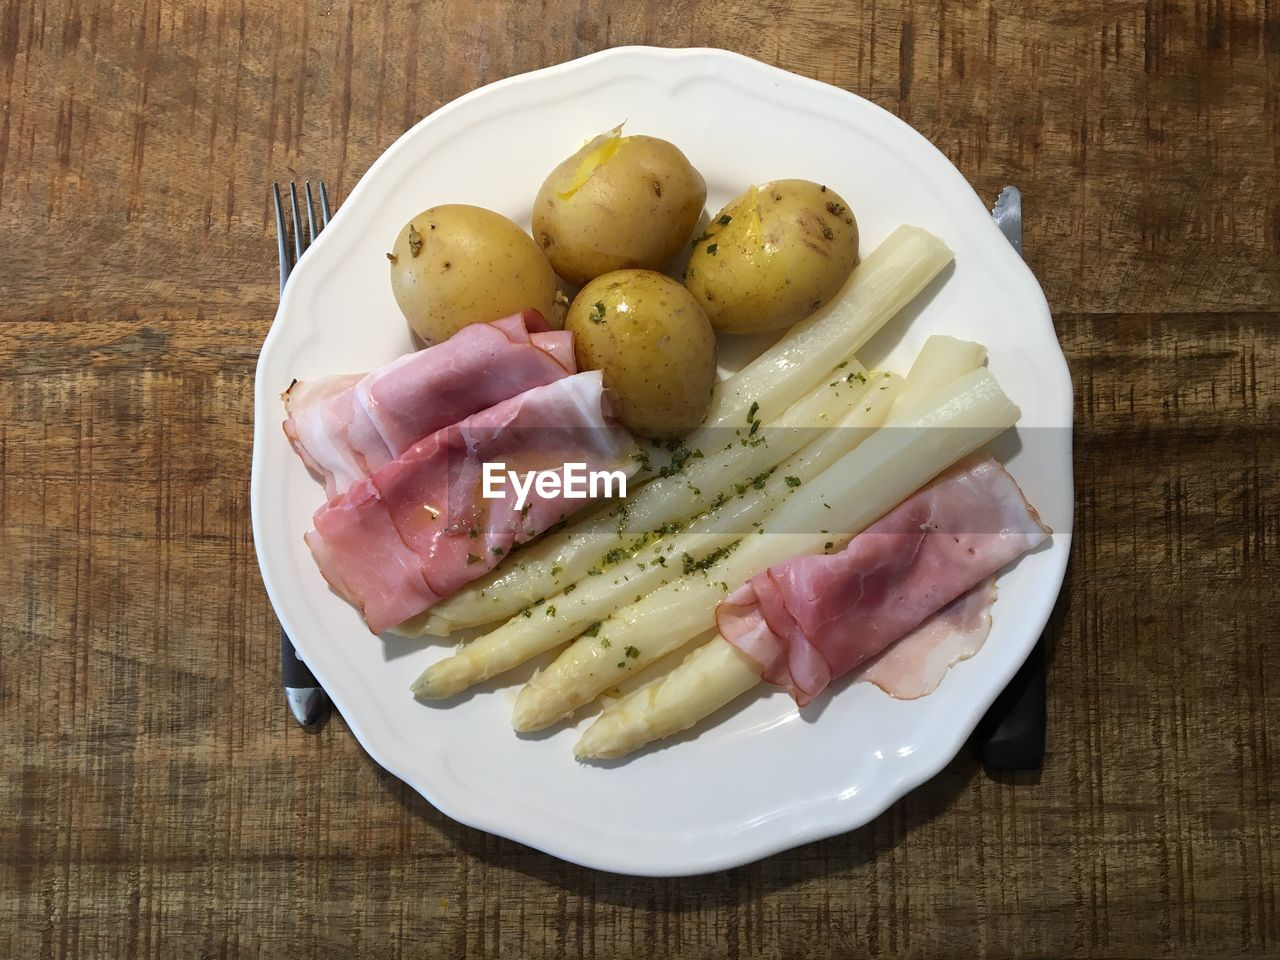 food, freshness, food and drink, still life, table, healthy eating, wellbeing, high angle view, indoors, wood - material, no people, plate, vegetable, potato, meat, ready-to-eat, close-up, directly above, processed meat, serving size